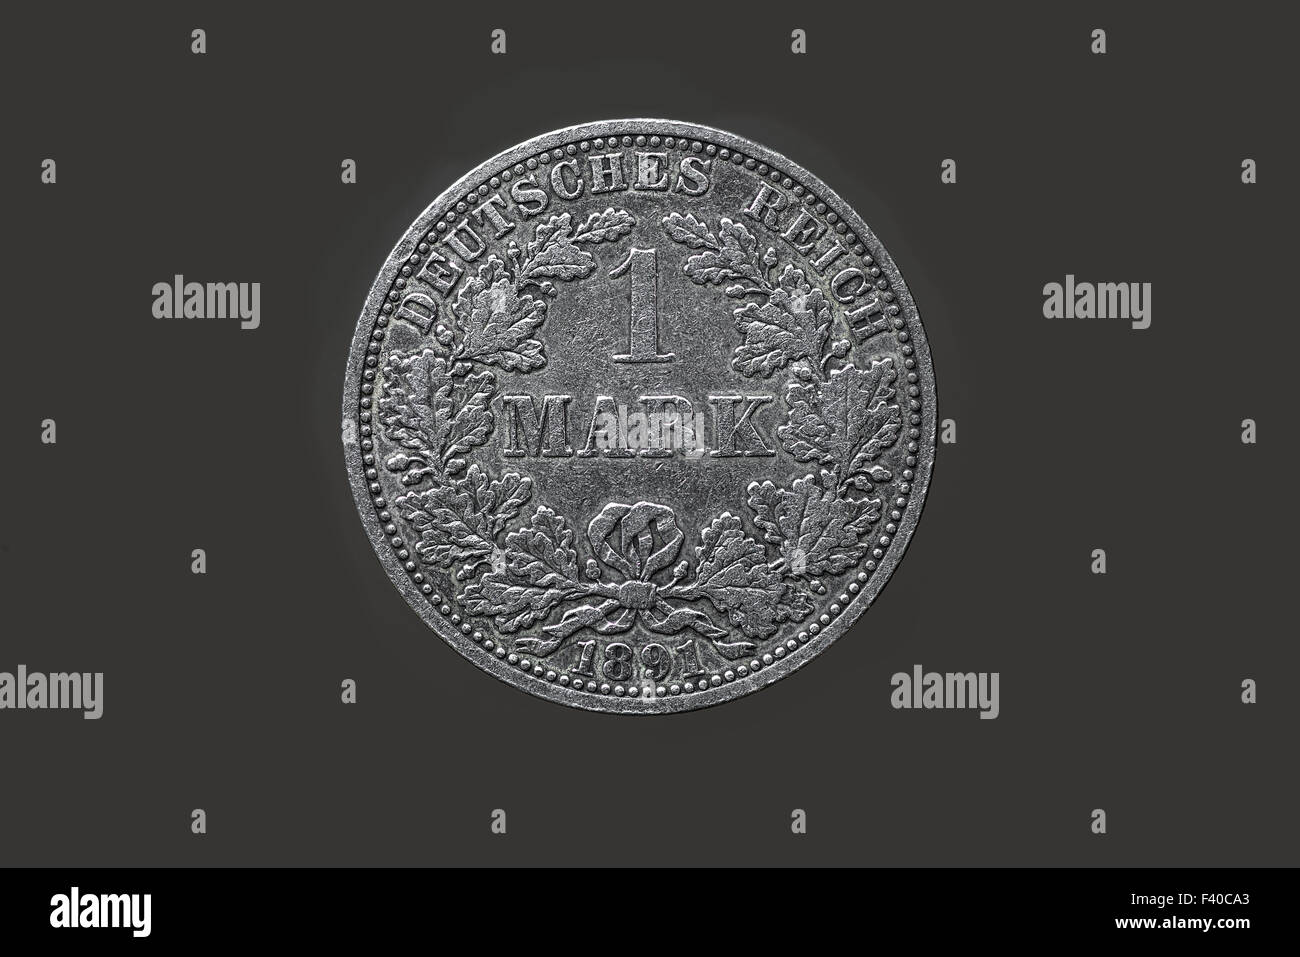 Silver coin, 1 Mark, Imperial Germany - Stock Image